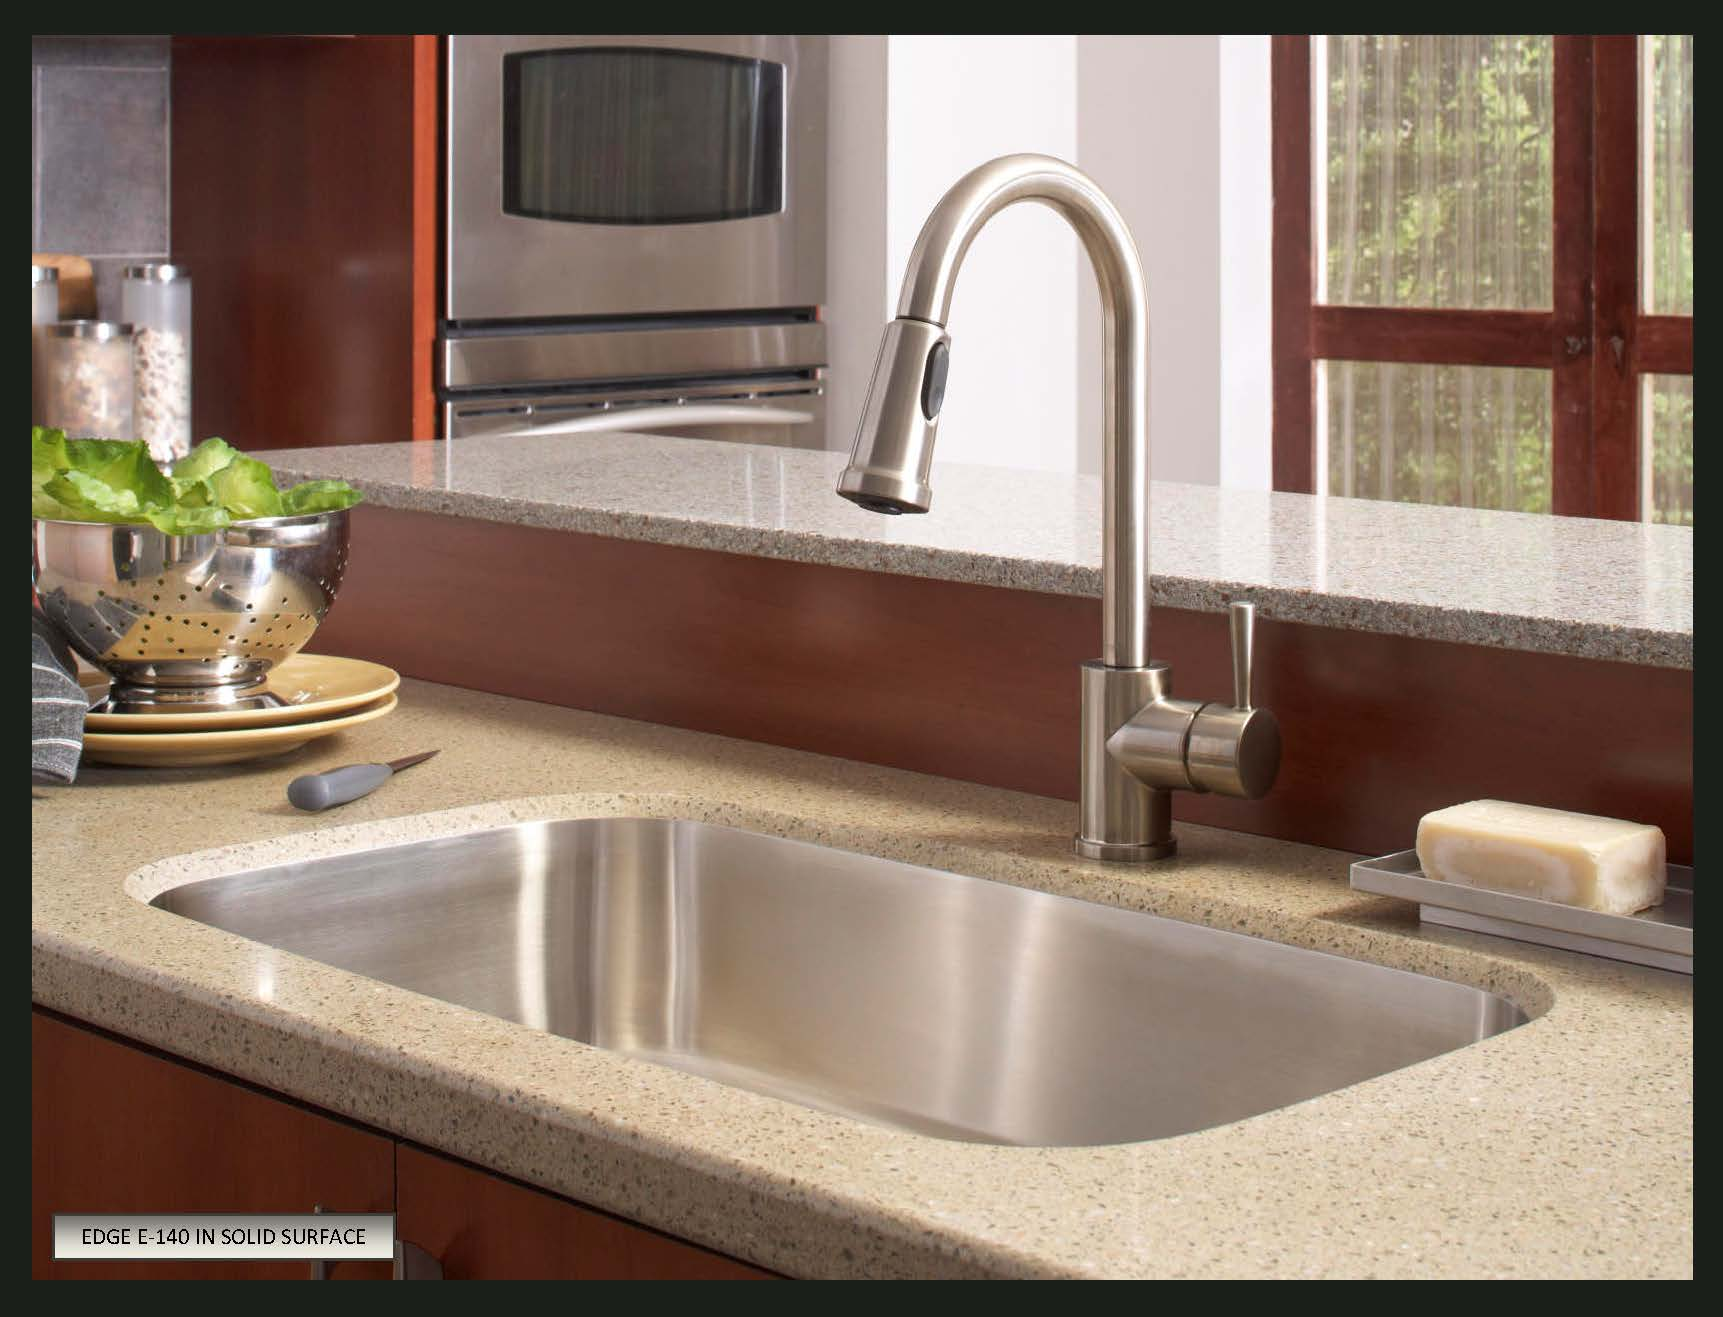 top mount sink archives | solidsurface blog